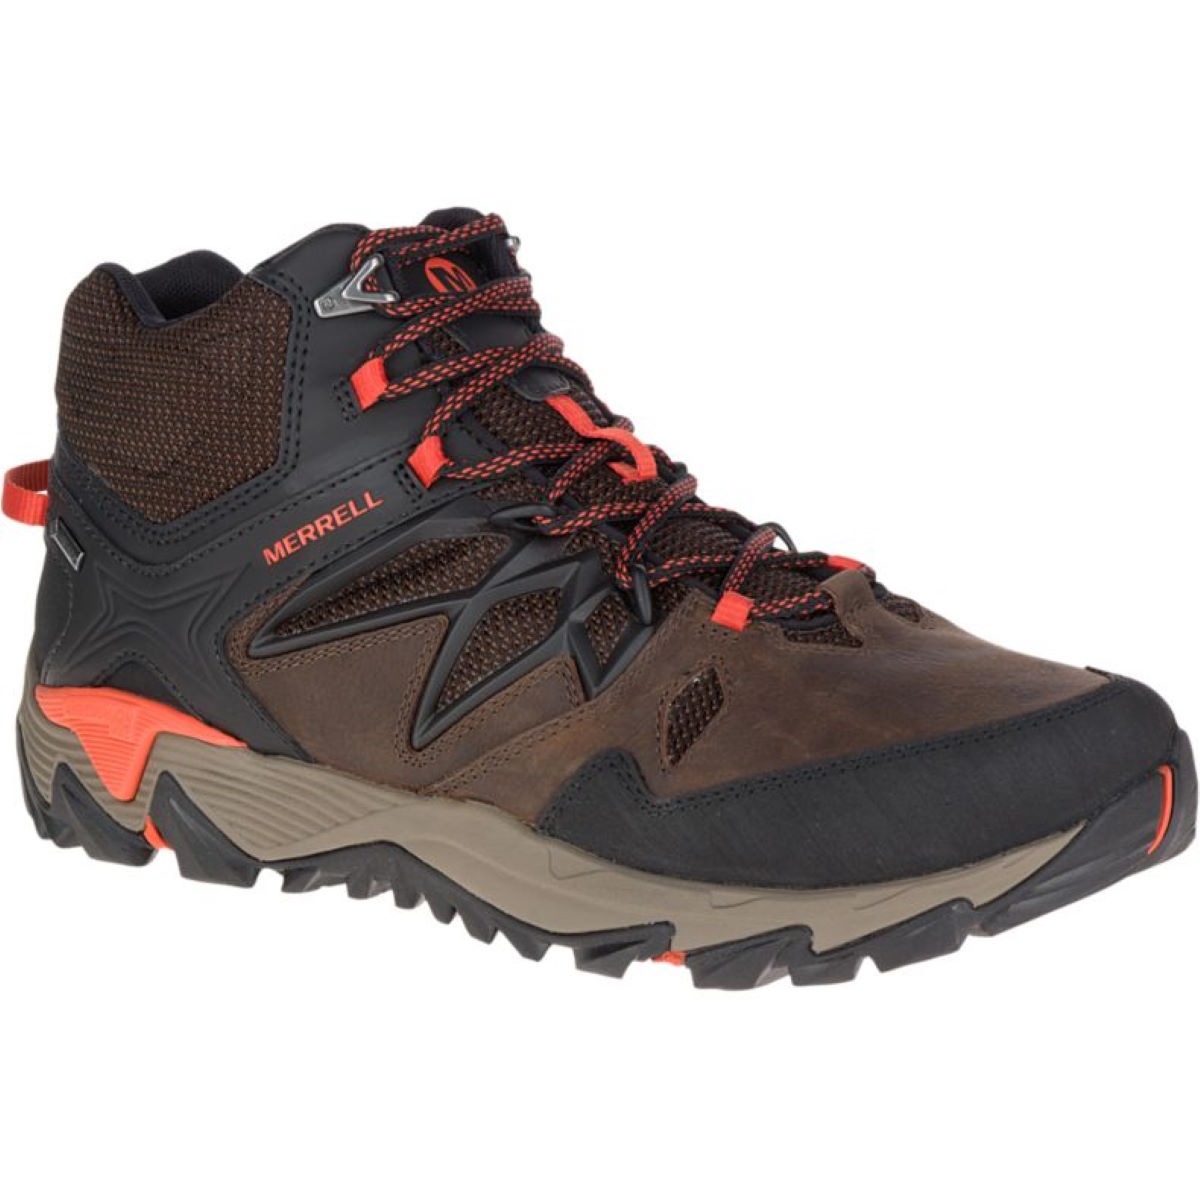 Merrell All Out Blaze 2 MID GTX   Brown/Red UK 8.5 - 10.5 Clay